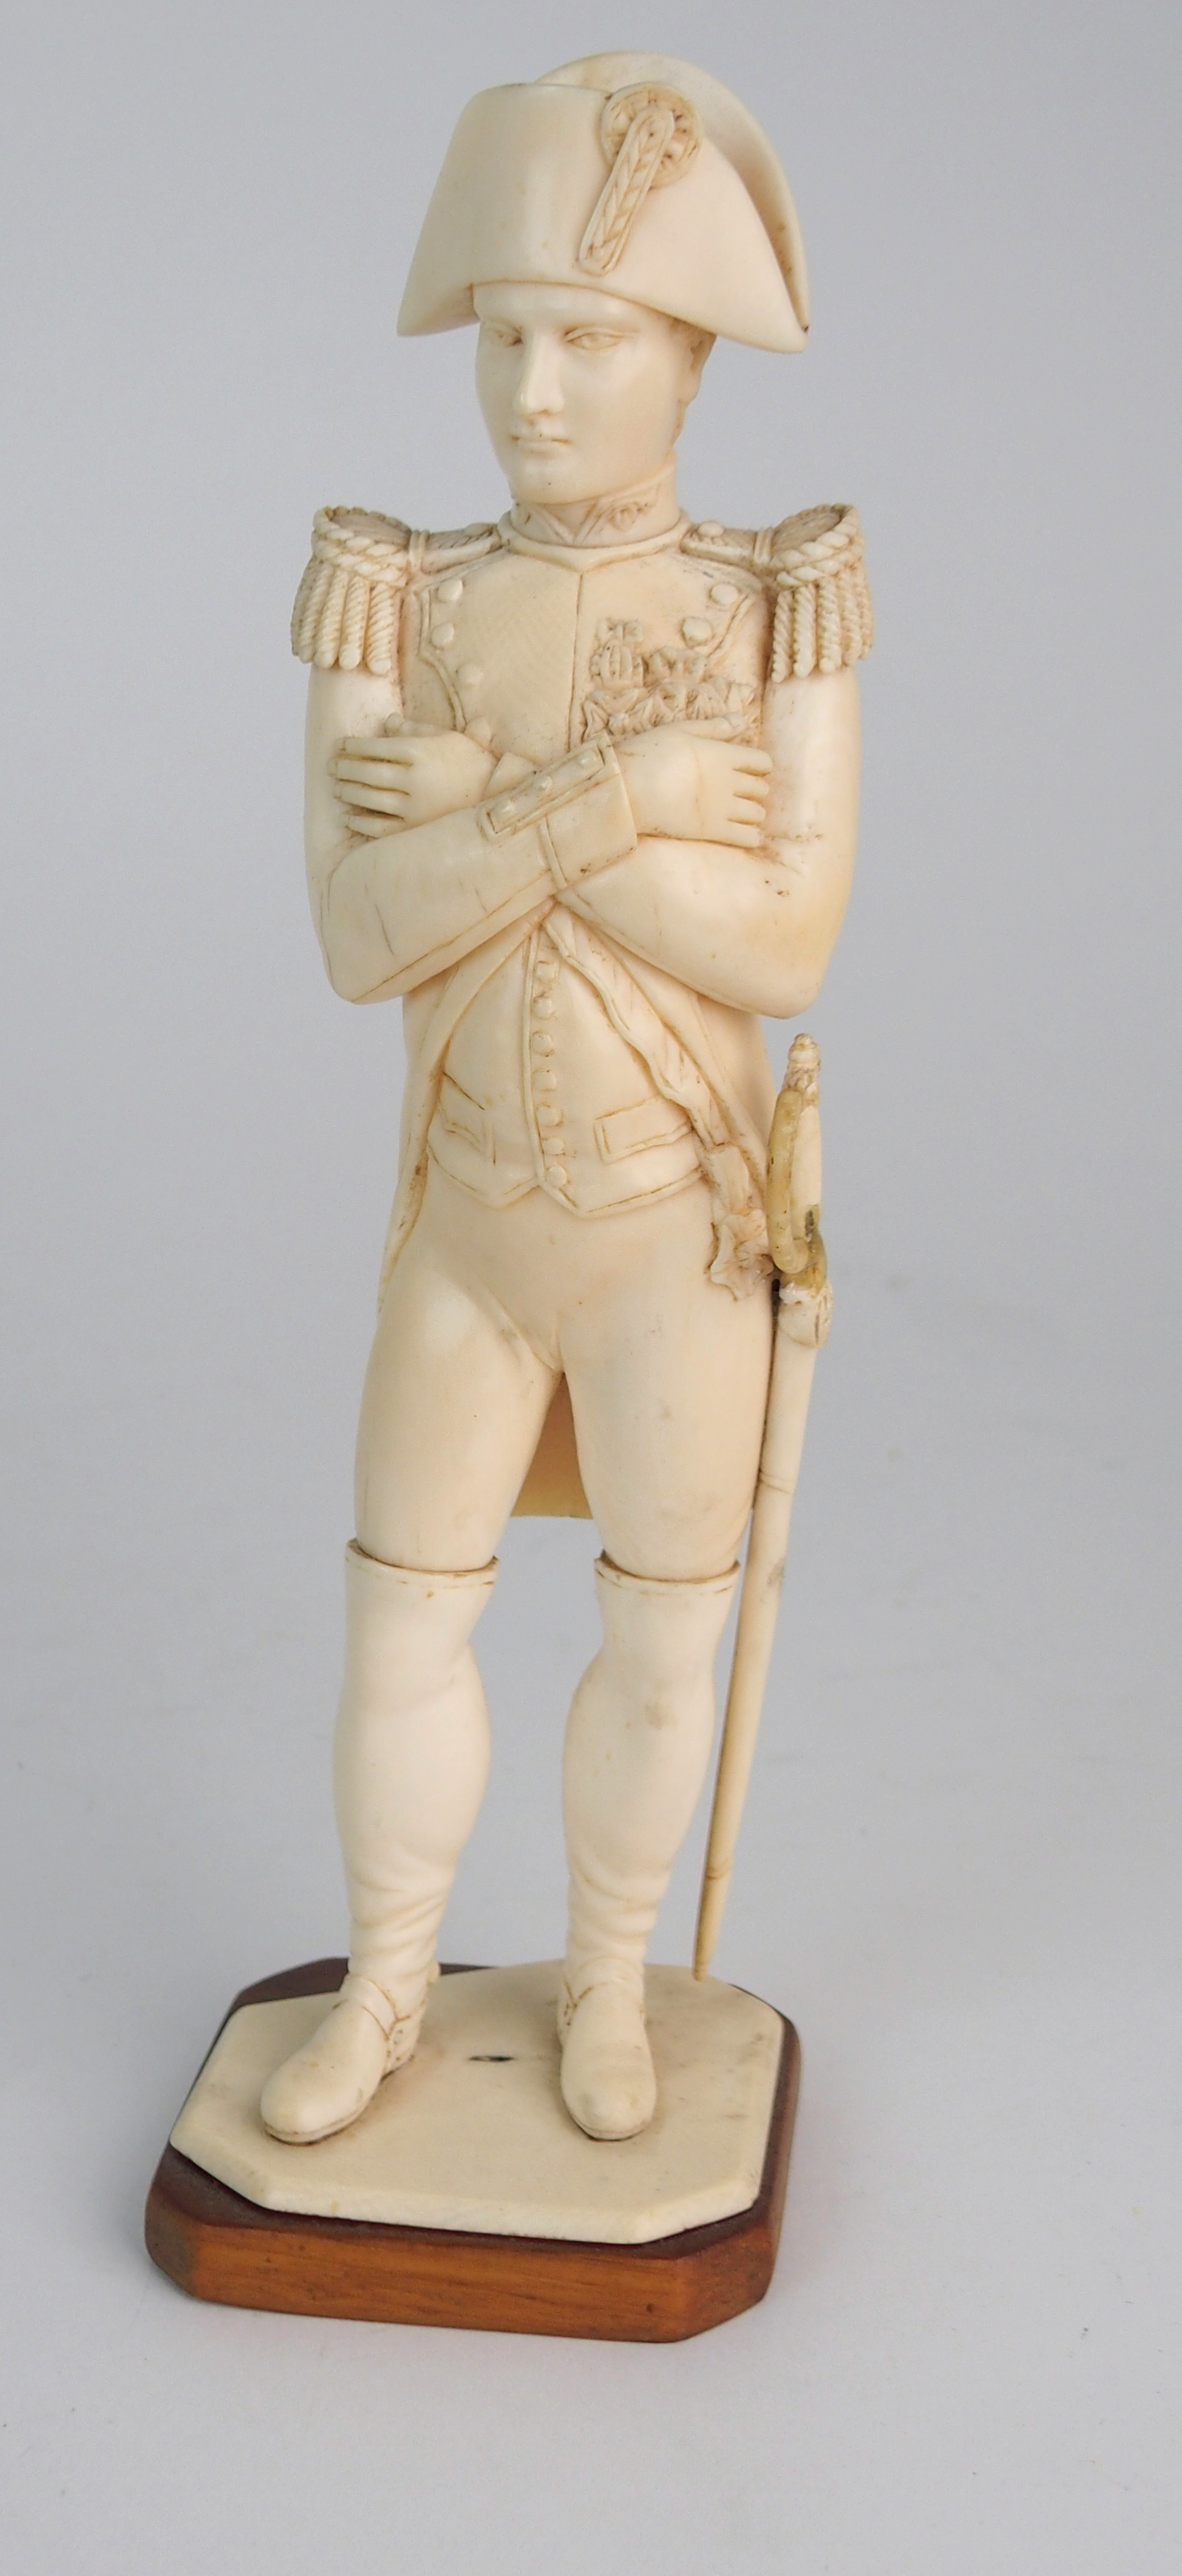 A LATE 19TH/EARLY 20TH CENTURY CARVED IVORY MODEL OF NAPOLEON in uniform with crossed arms, on